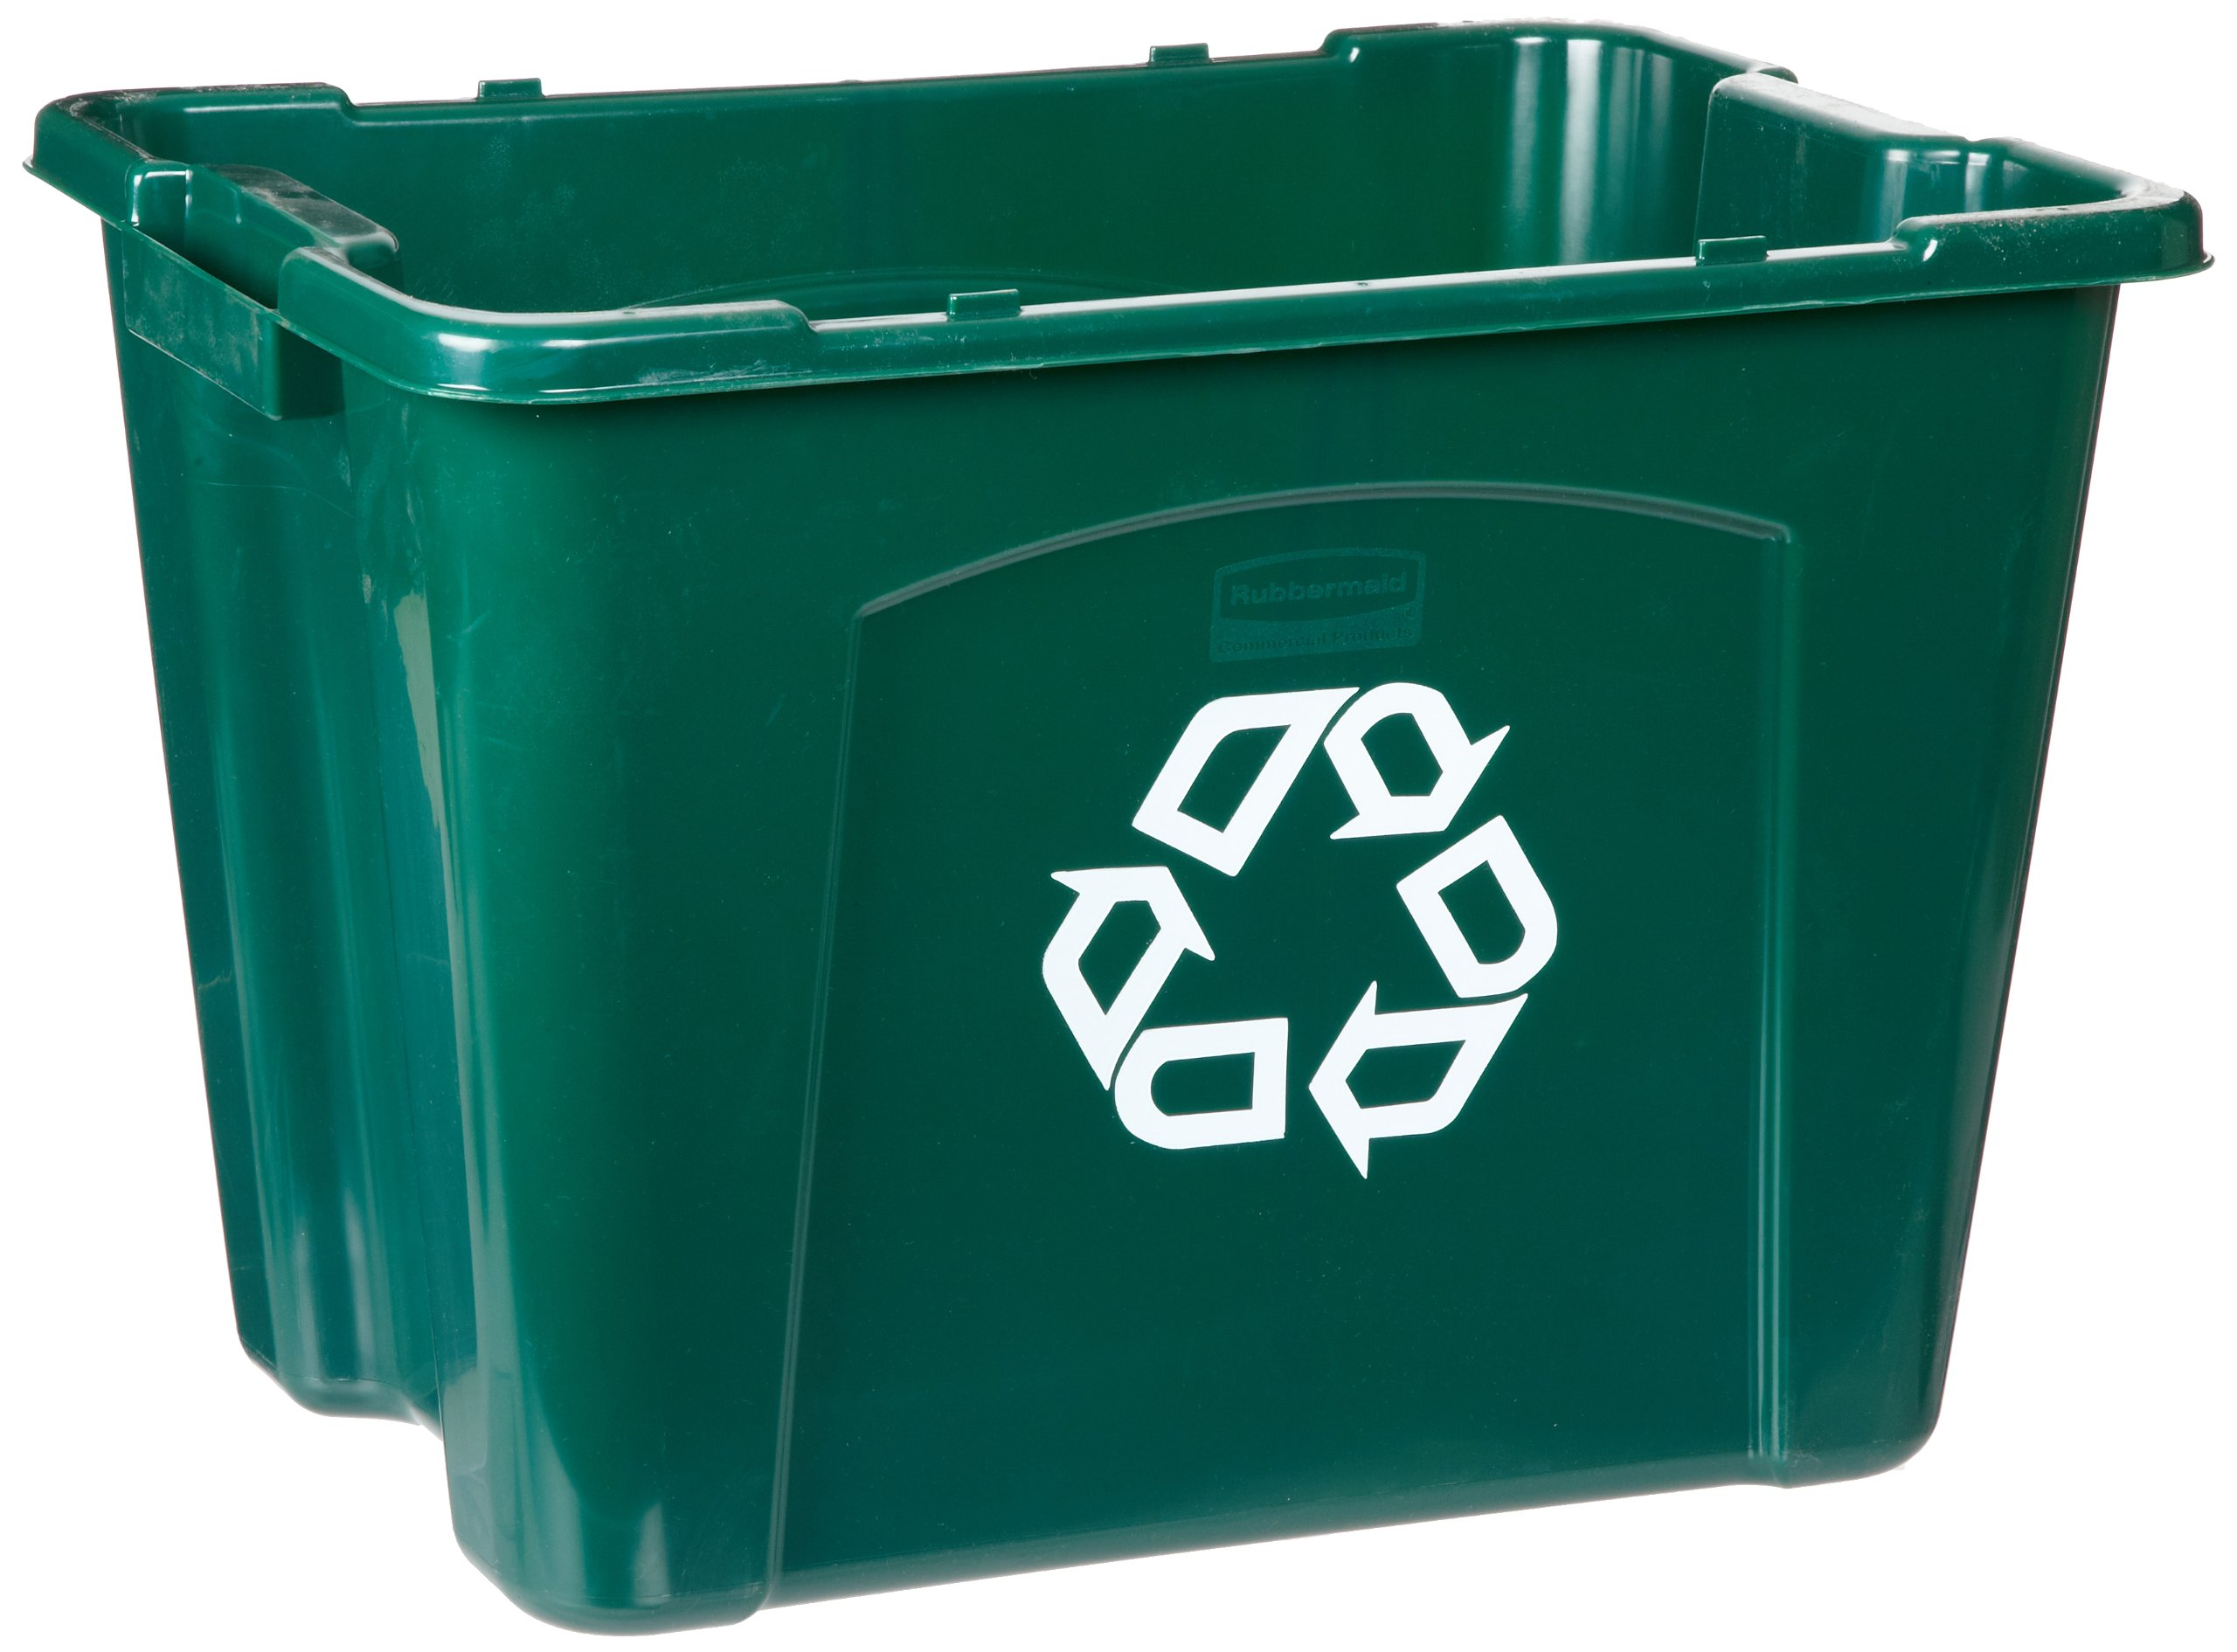 Rubbermaid Commercial  FG571473GRN Recycling Bin, 14 gallon, Green (Pack of 6)